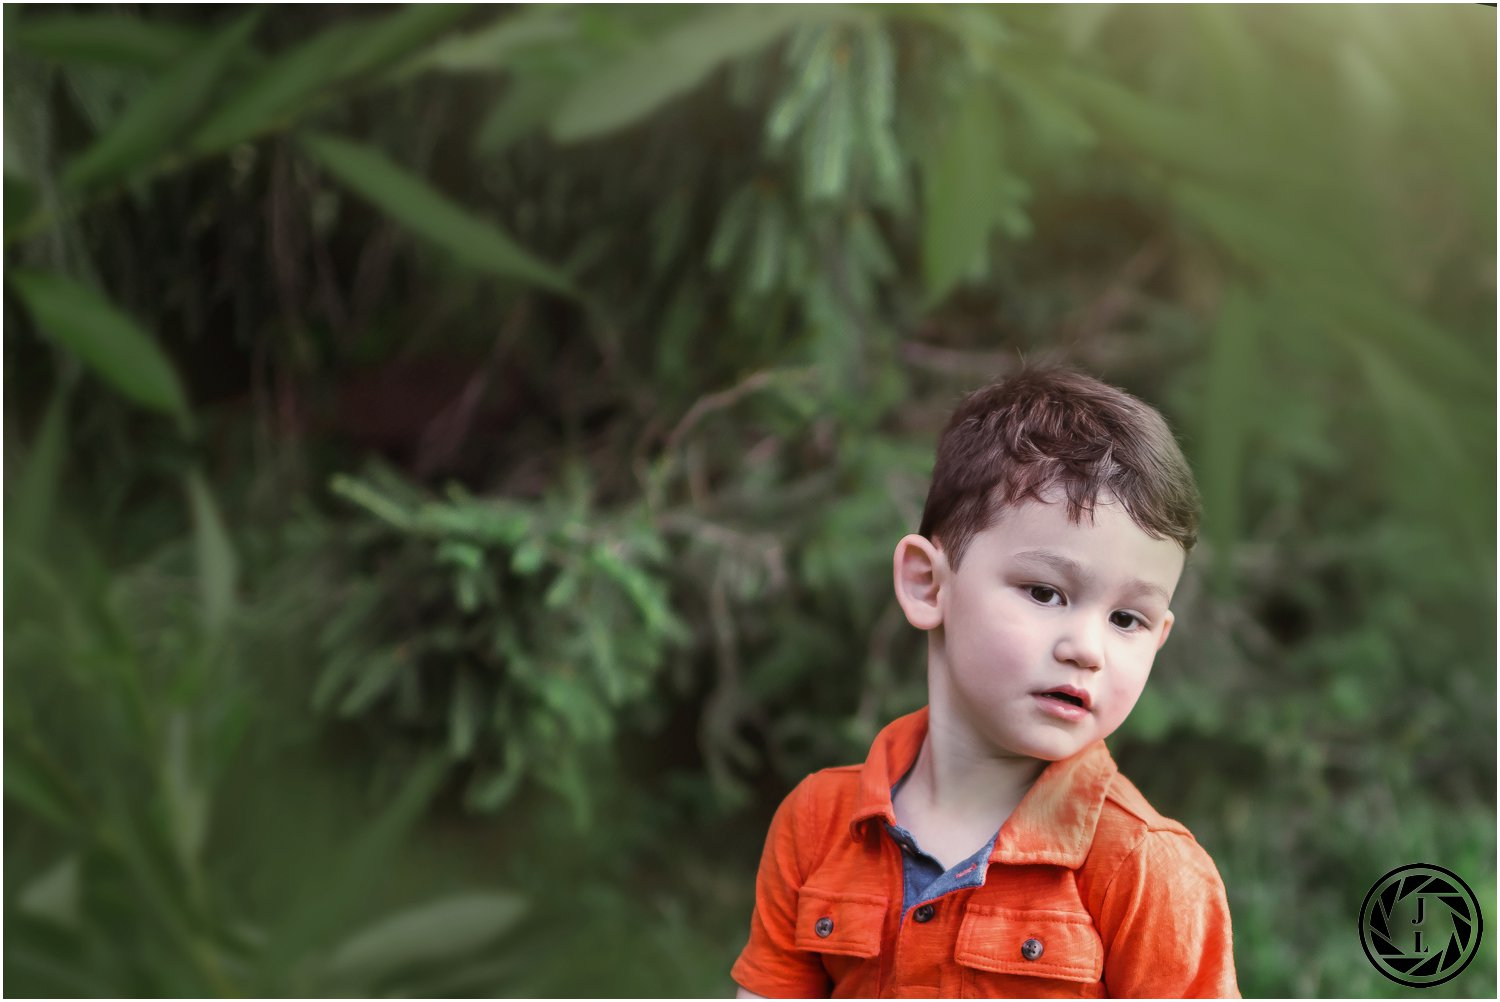 Central-Park-New-York-Family-Portrait-Session-Photography-by-Jessica-Leigh_0005.jpg